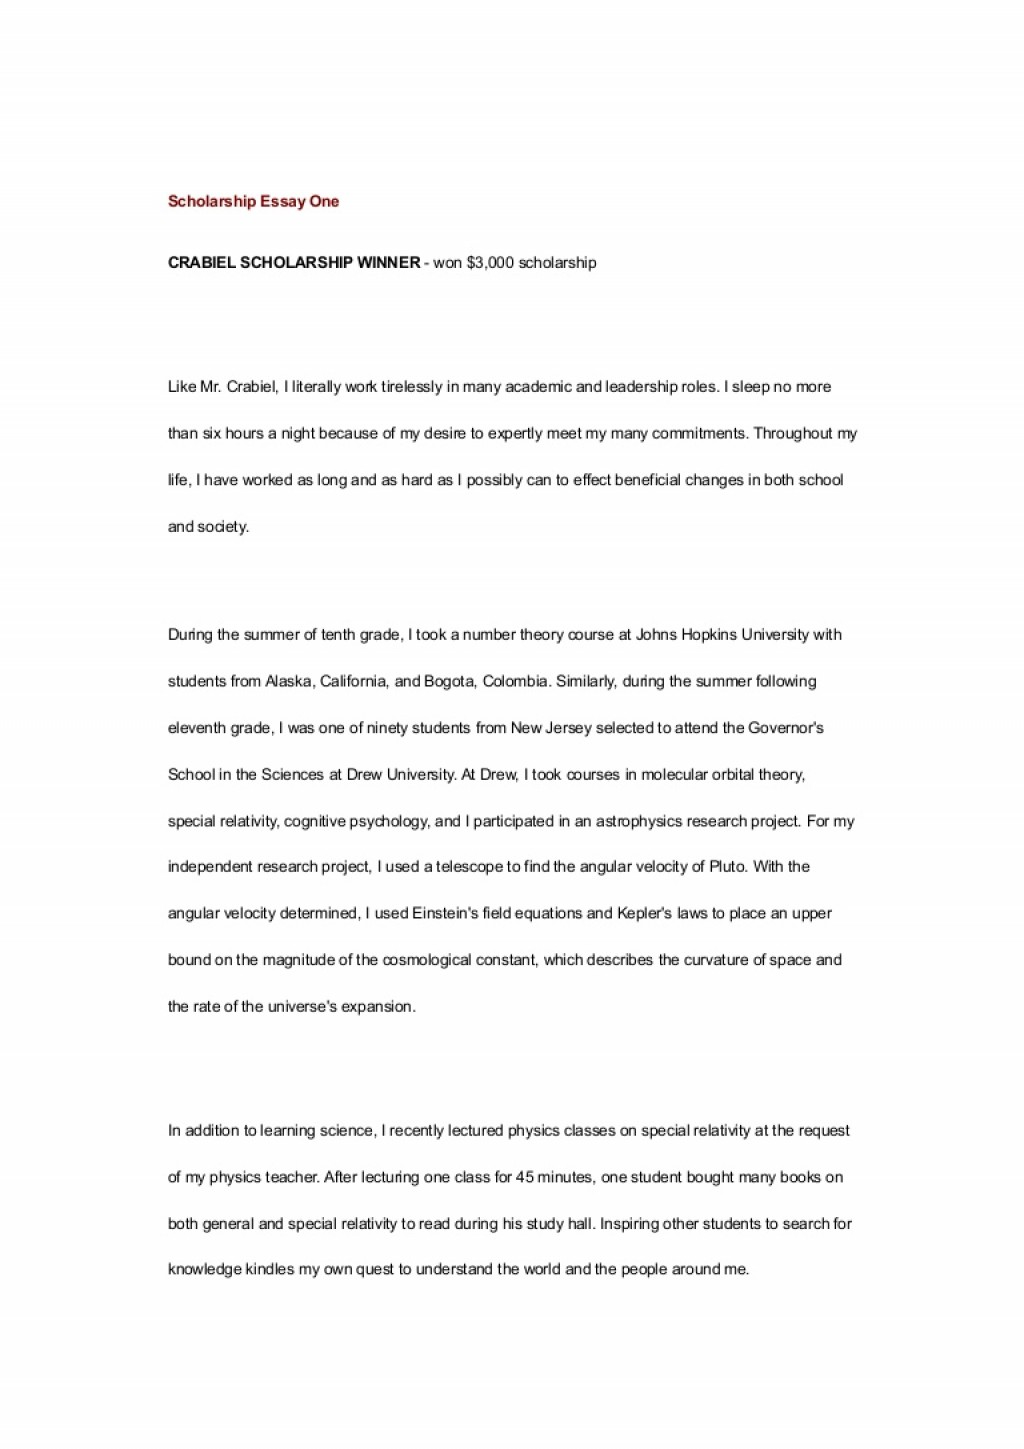 005 Scholarship Essay Examples Example Scholarshipessayone Phpapp01 Thumbnail Impressive Financial Need Pdf Nursing Large